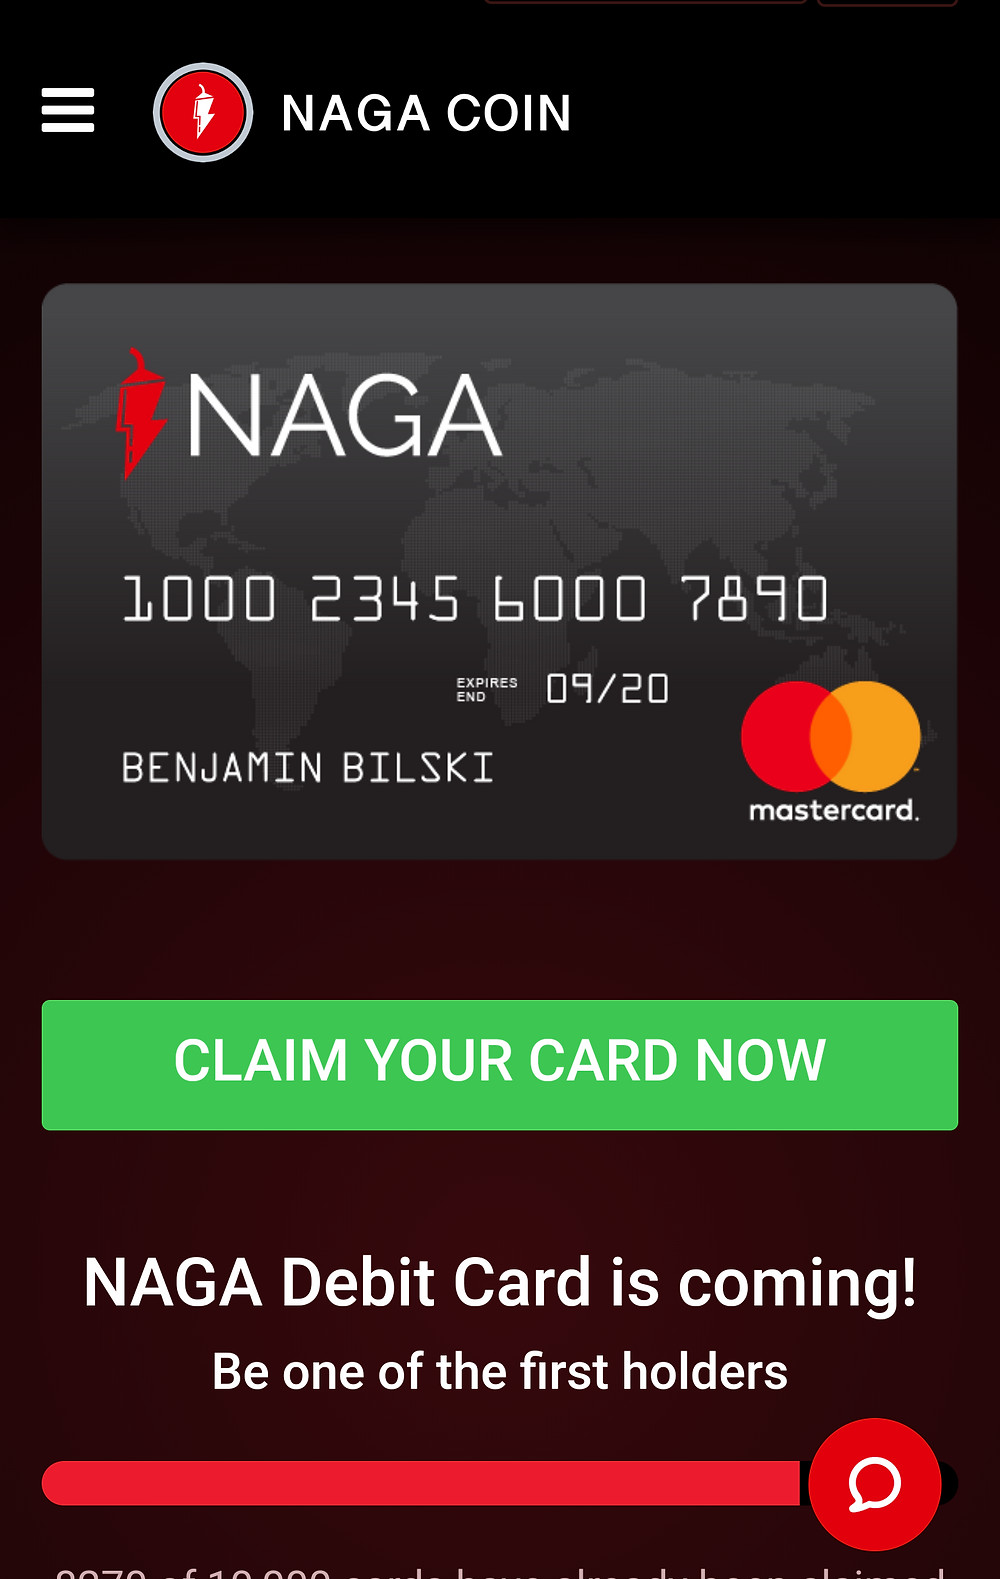 the Naga Coin is a cryptocurrency token tradable on exchanges like hitbtc and binance